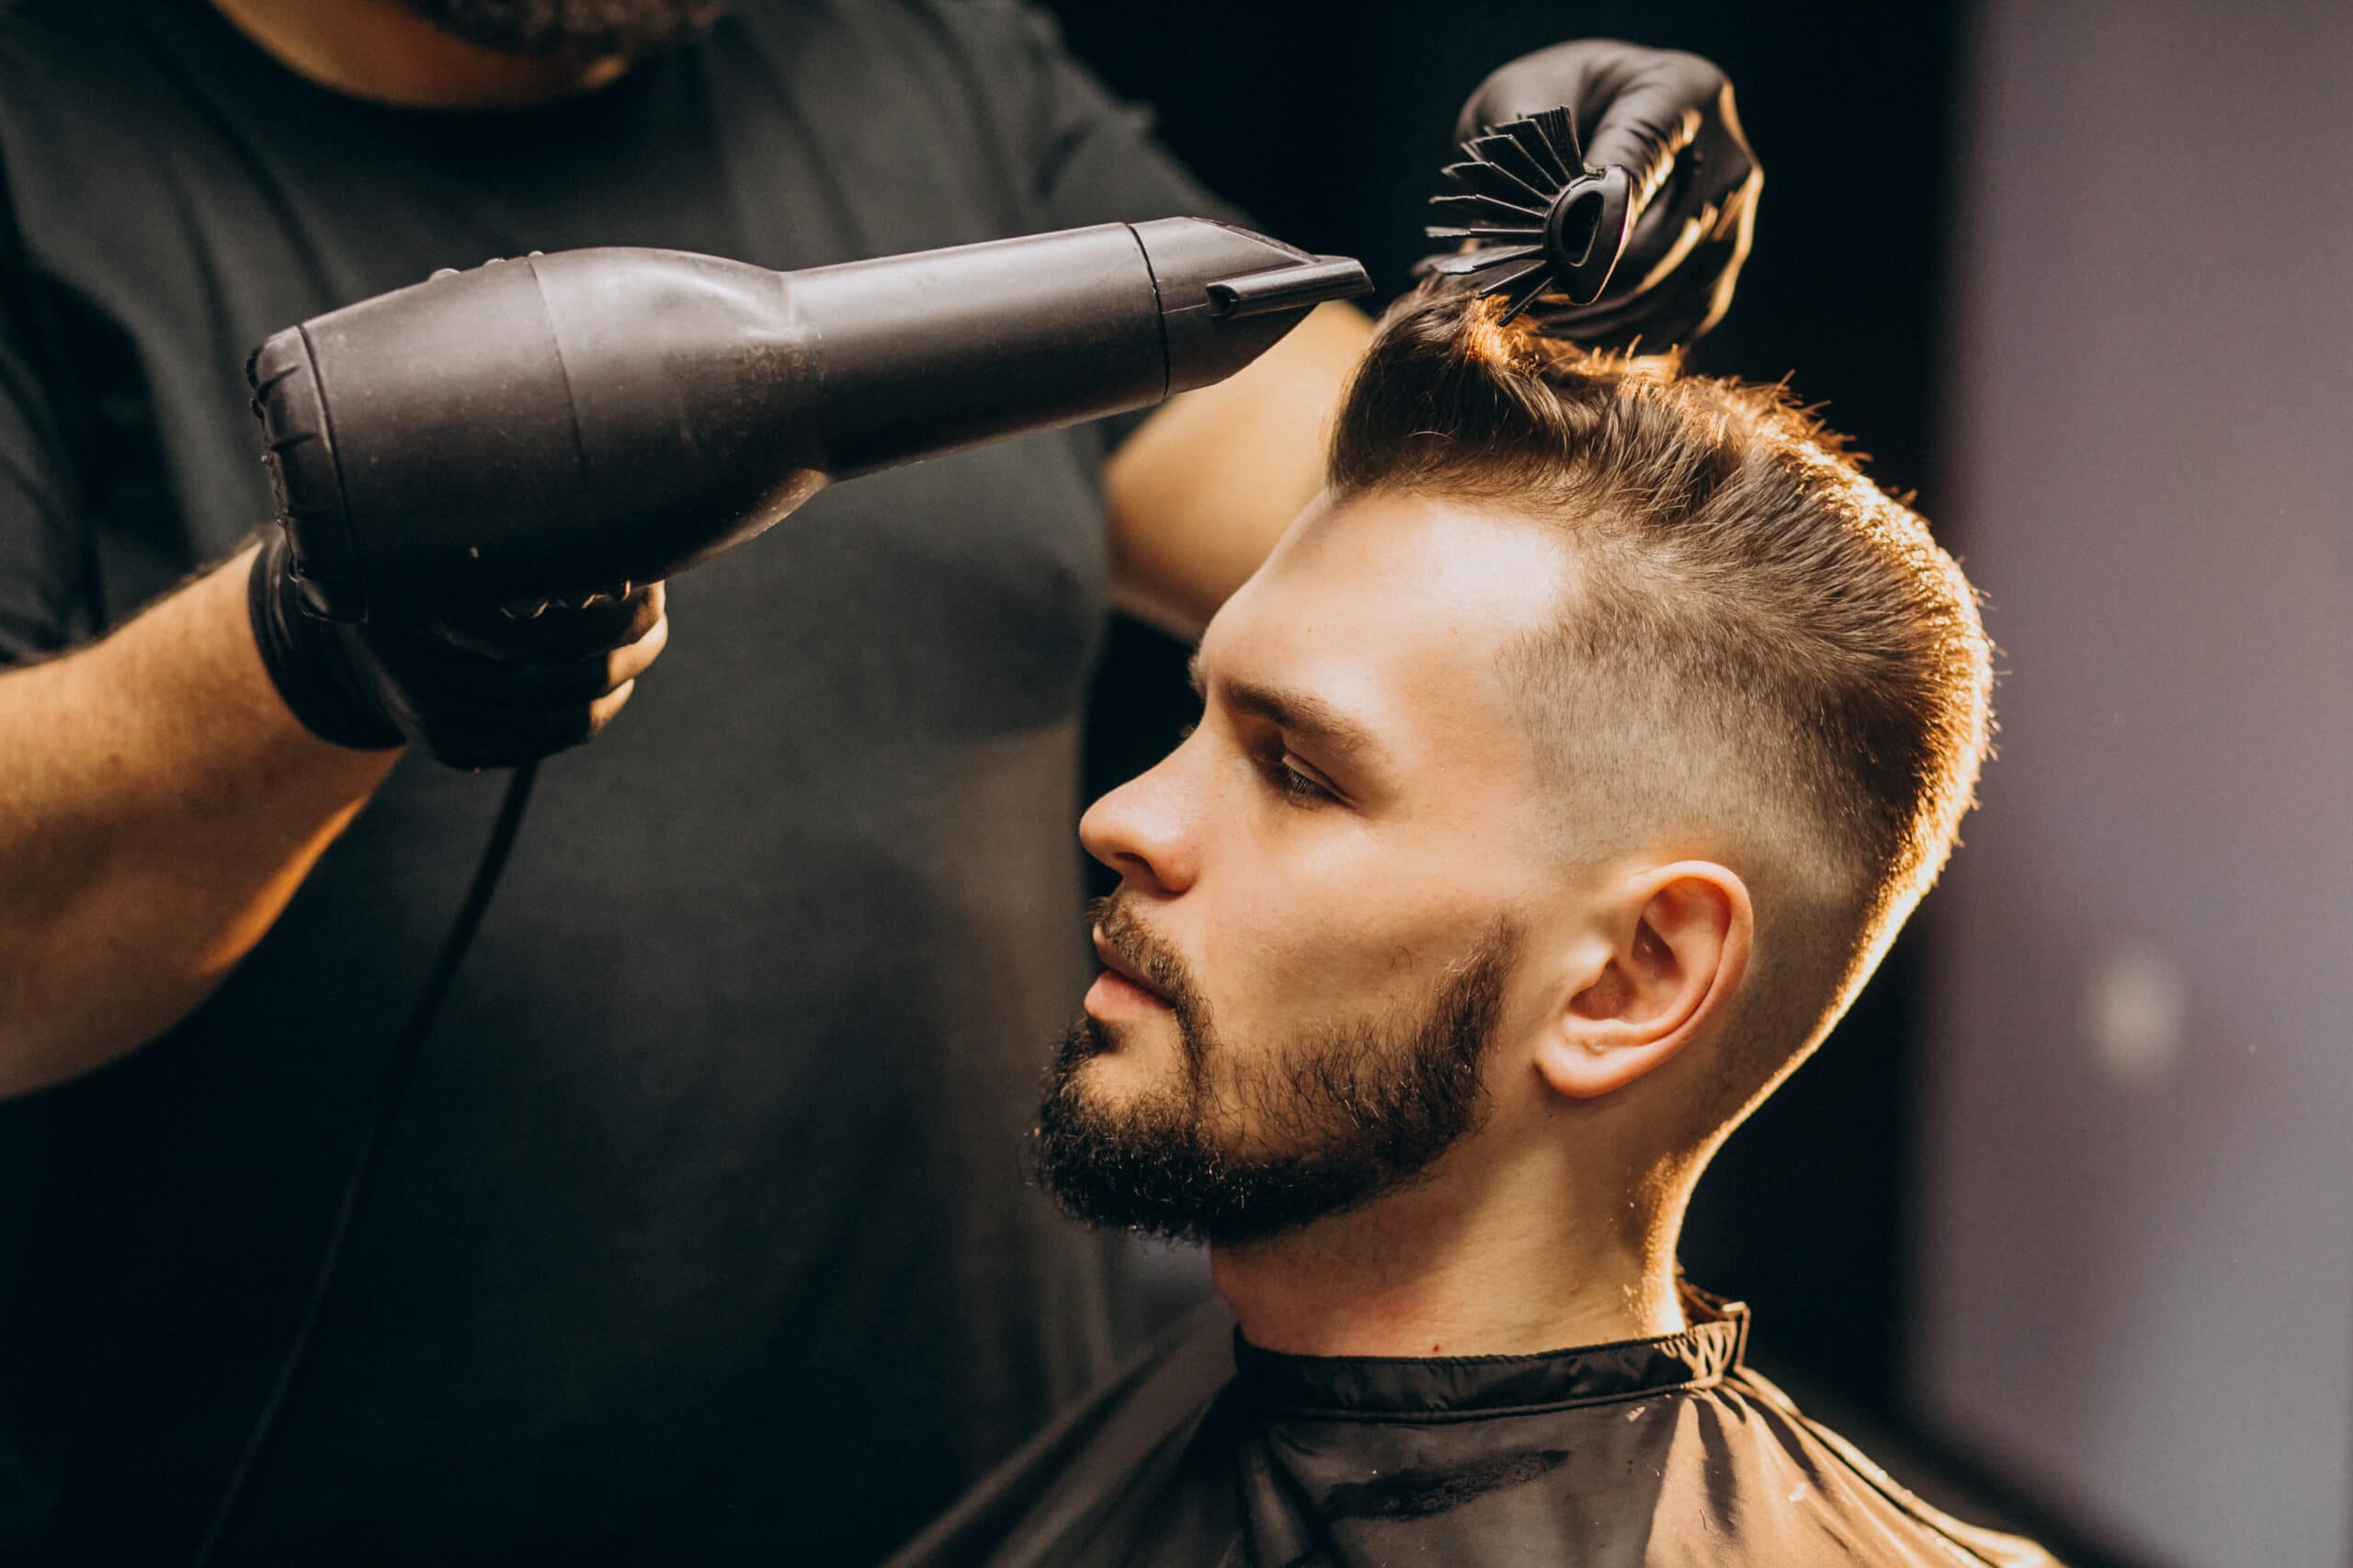 Handsome man at a barber shop styling hair